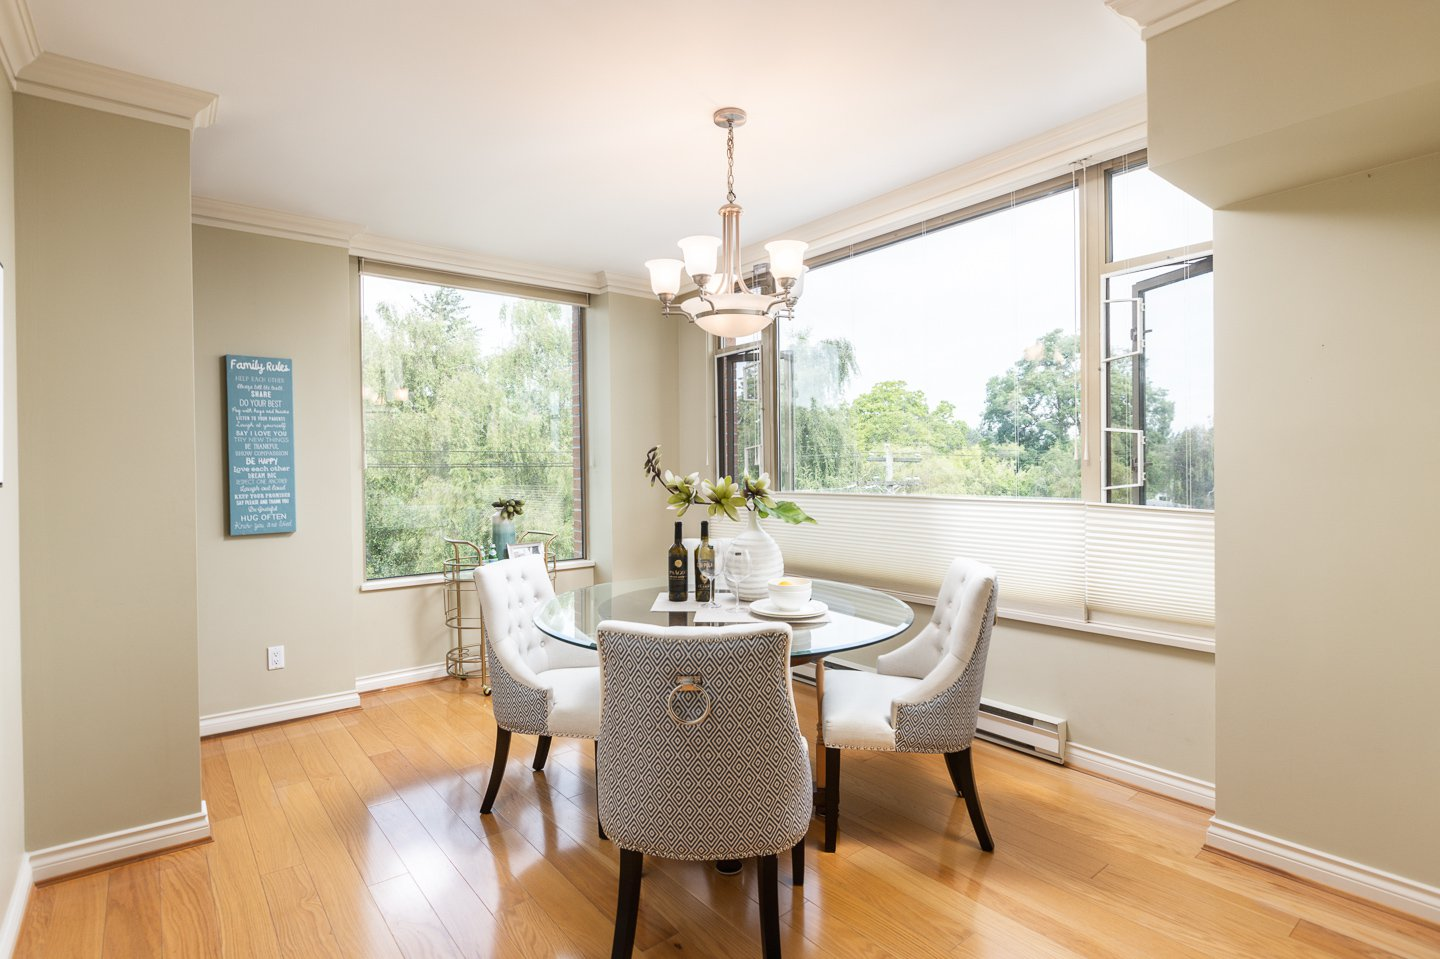 Photo 4: Photos: 401-2580 TOLMIE ST in VANCOUVER: Point Grey Condo for sale (Vancouver West)  : MLS®# R2397003